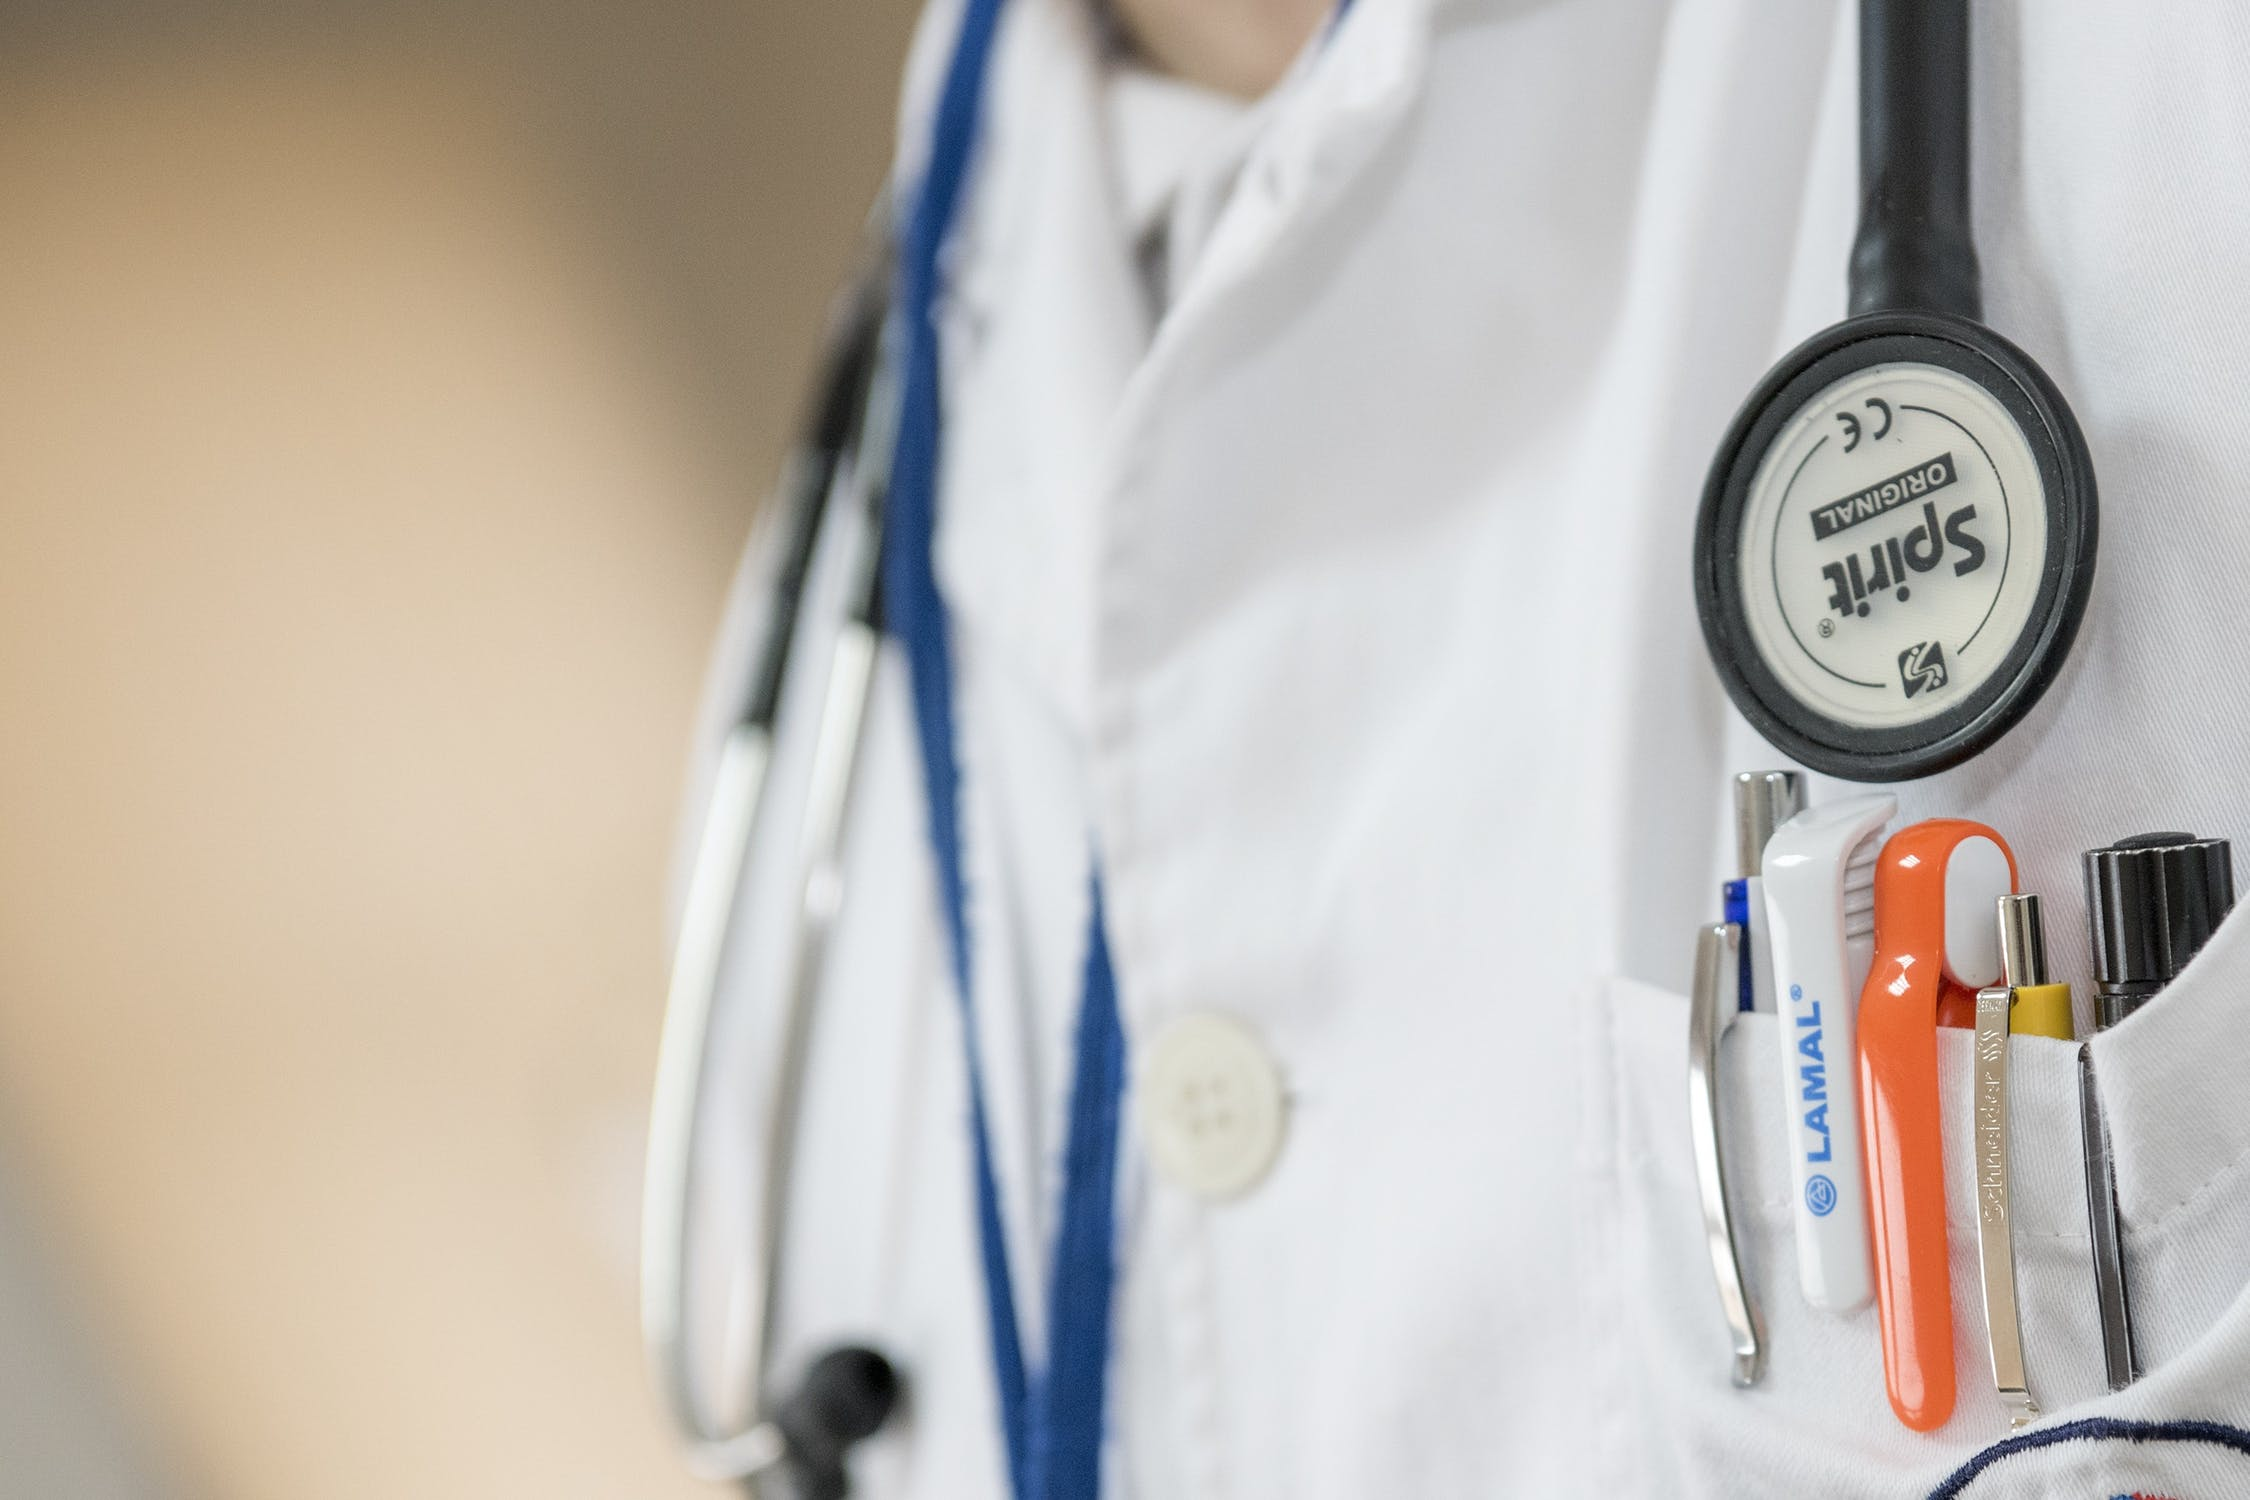 Image of doctors coat with pens in pocket and stethoscope